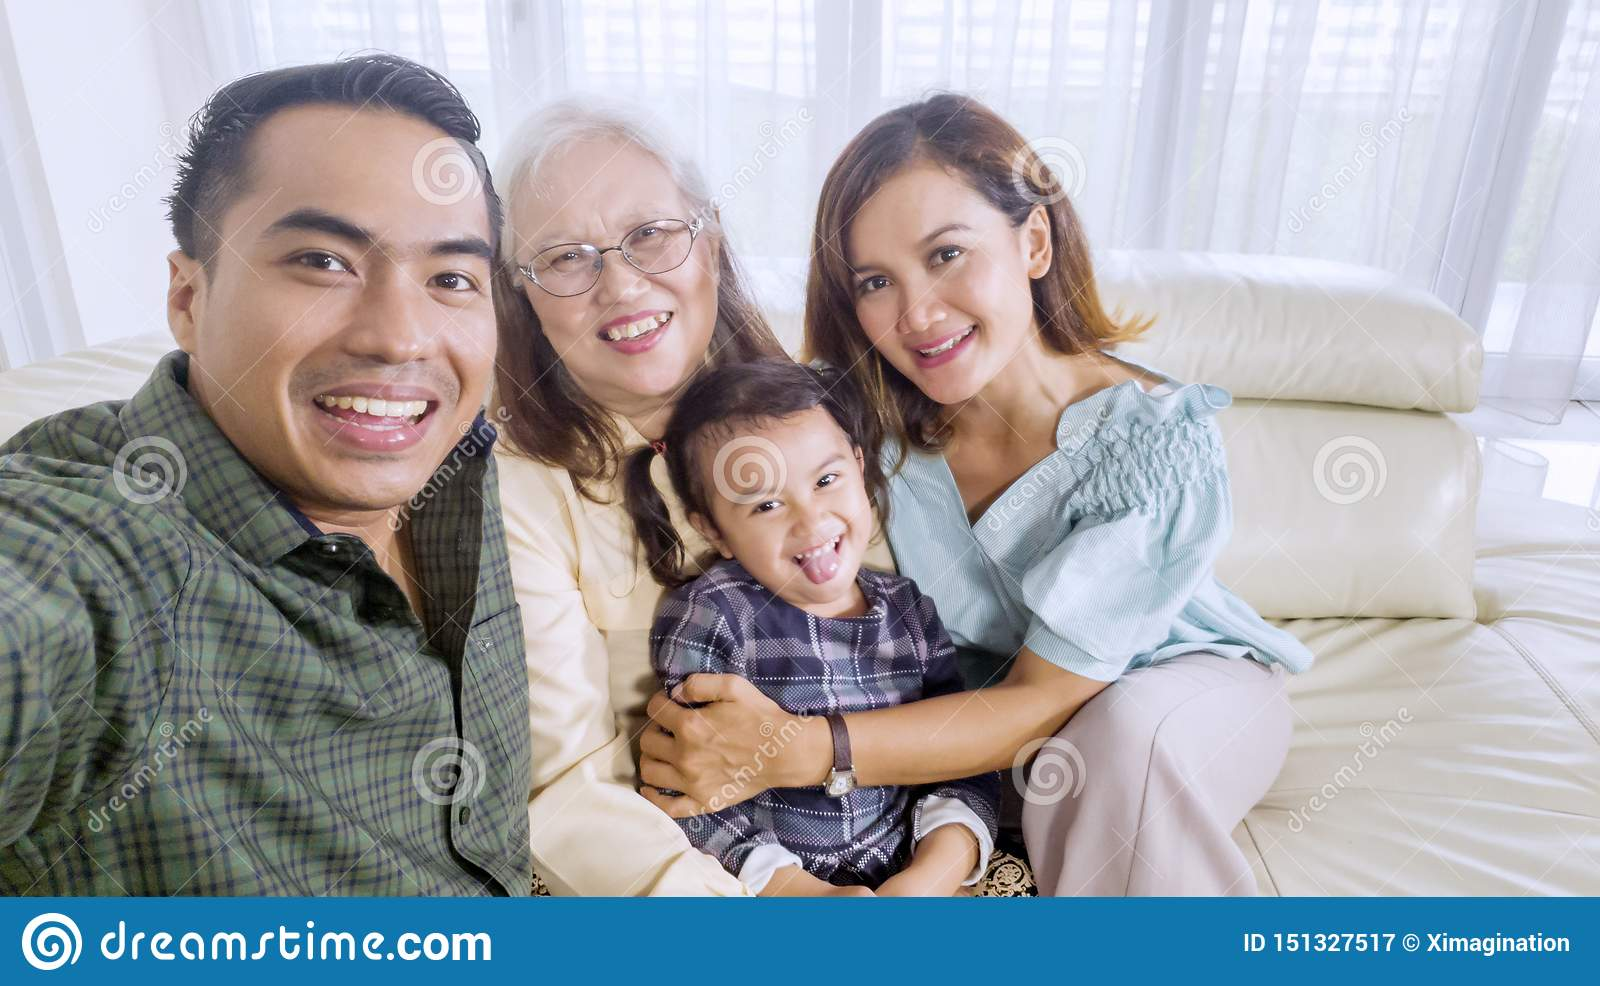 Smiling family takes a group picture at home